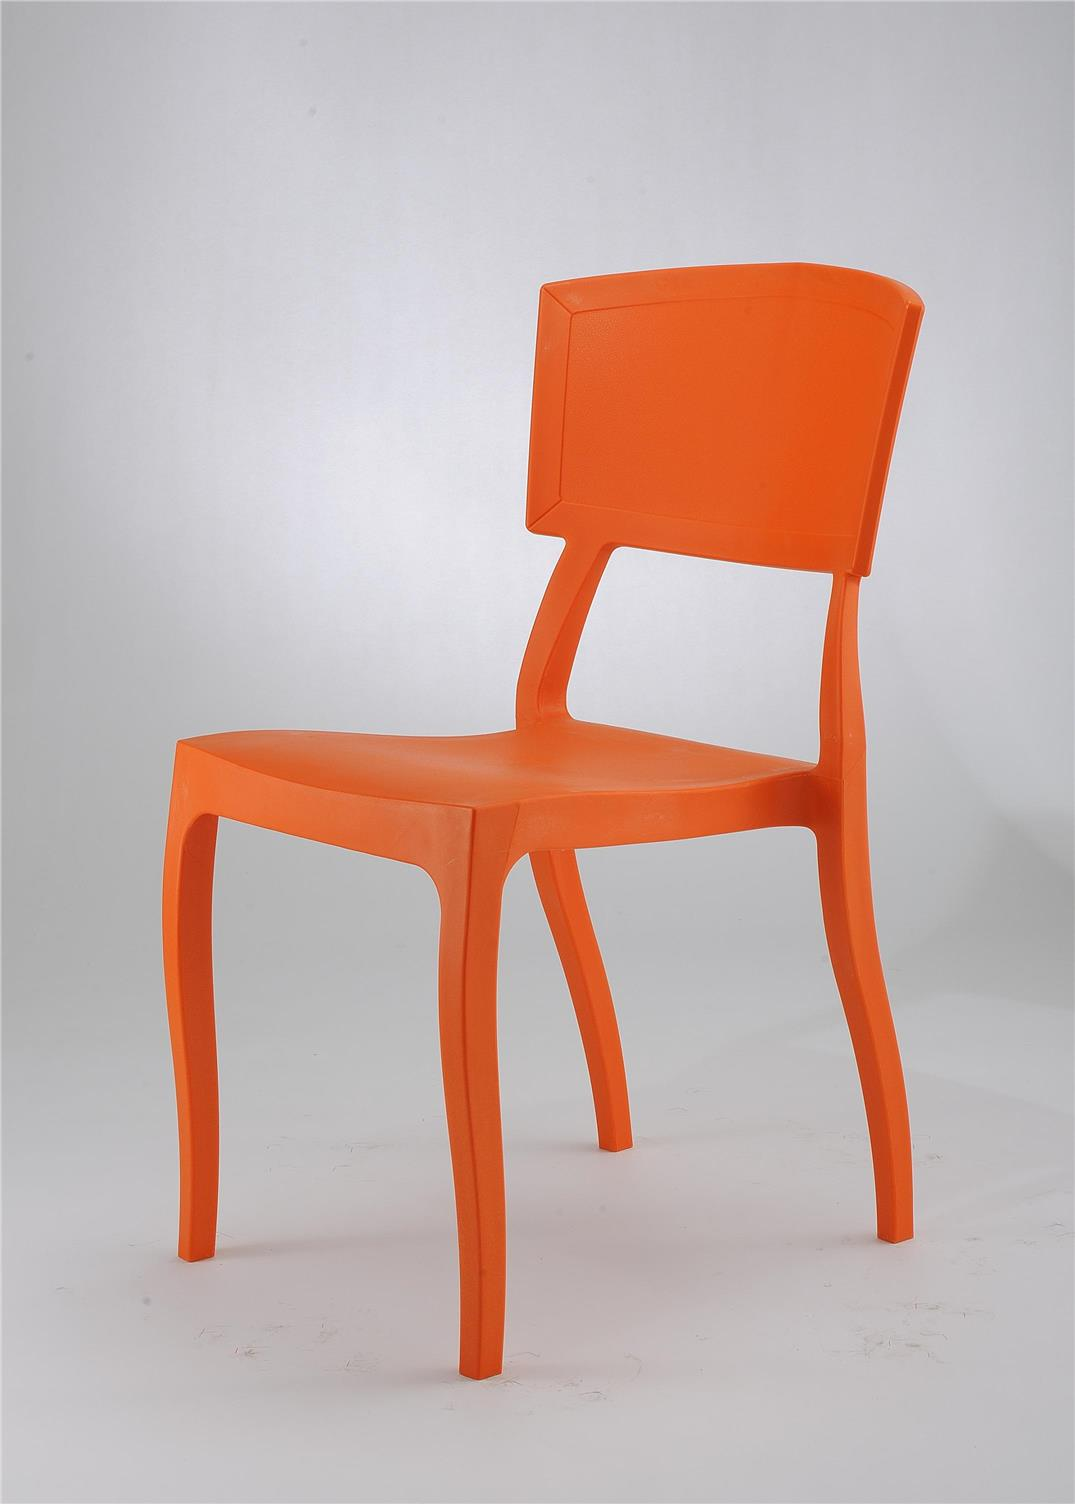 stool chair in malay folding lowes designer restaurant furnit end 10 31 2018 12 15 pm